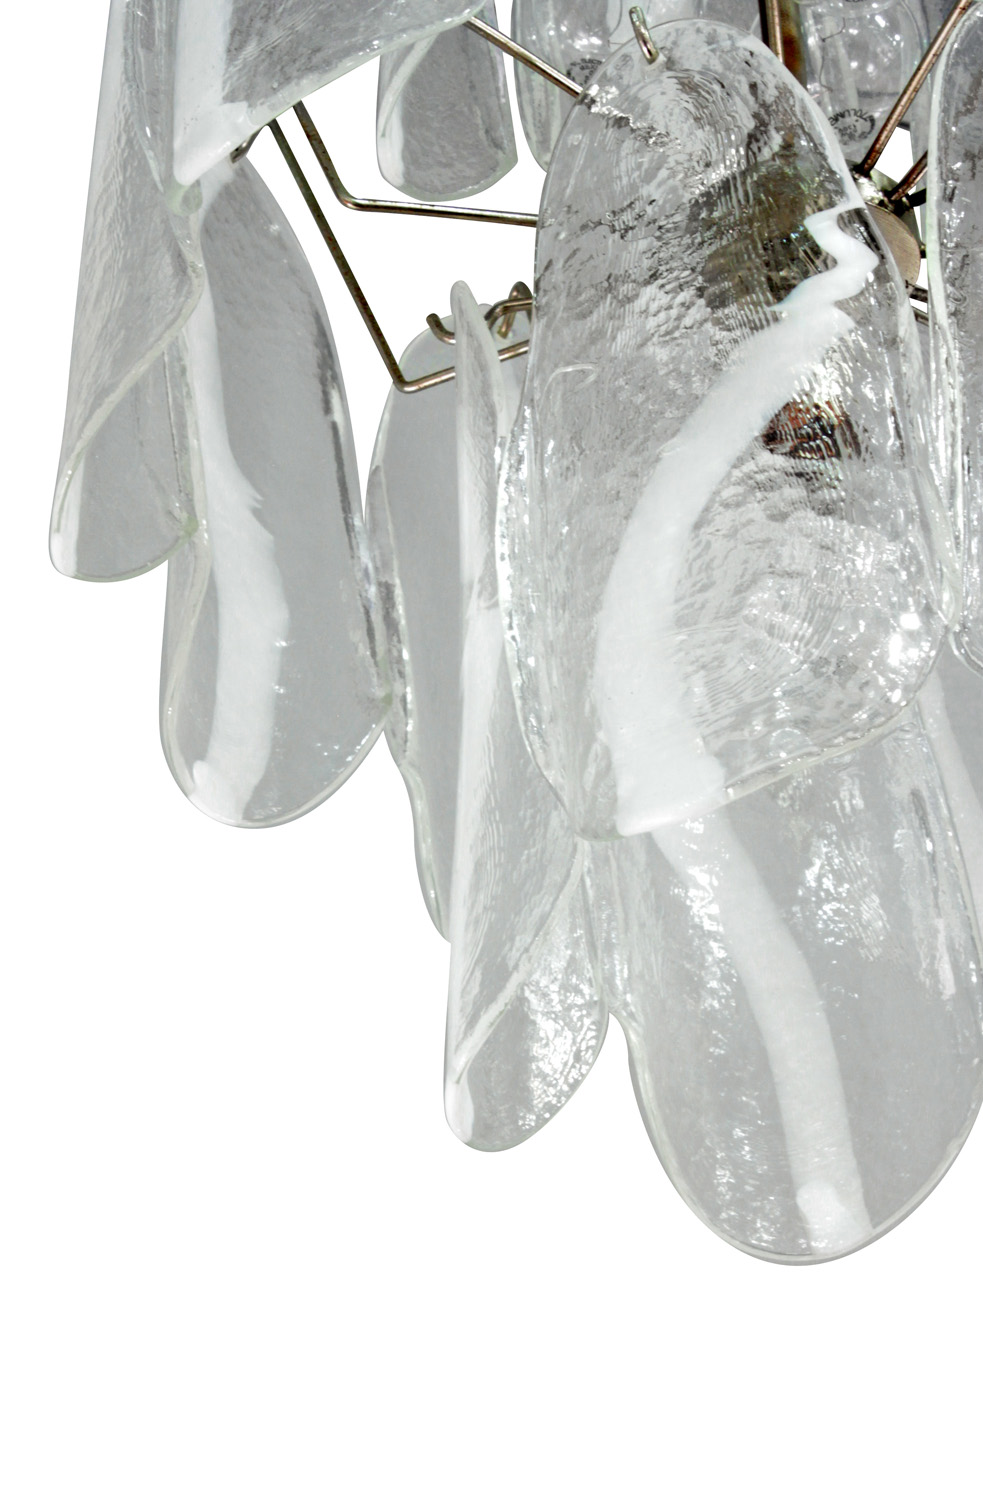 Mazzega 65 clear+white fasce chandelier196 detail3 hires.jpg